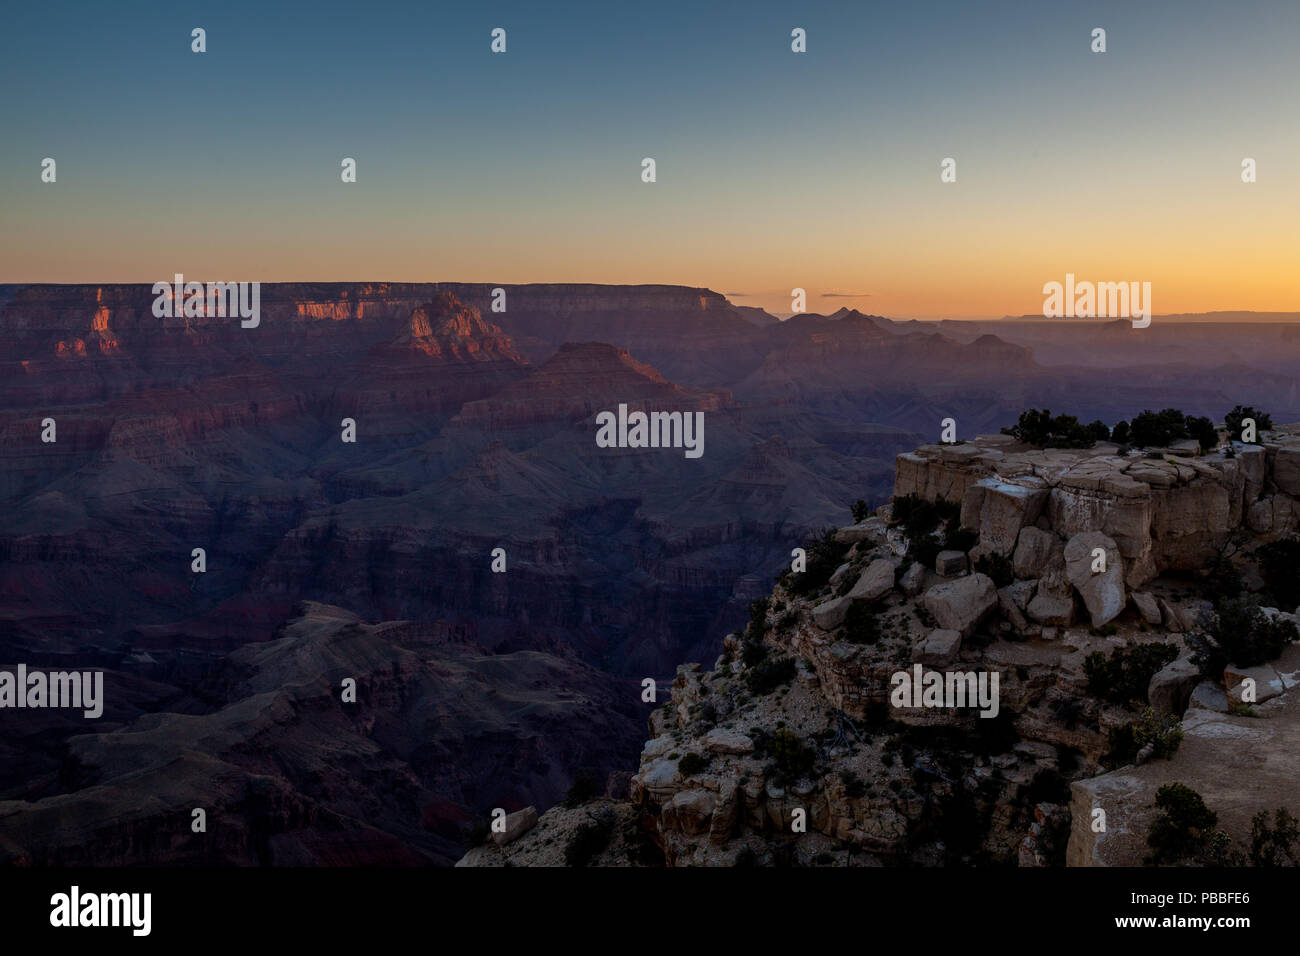 Sunrise @ Moran Point, Grand Canyon NP - Stock Image